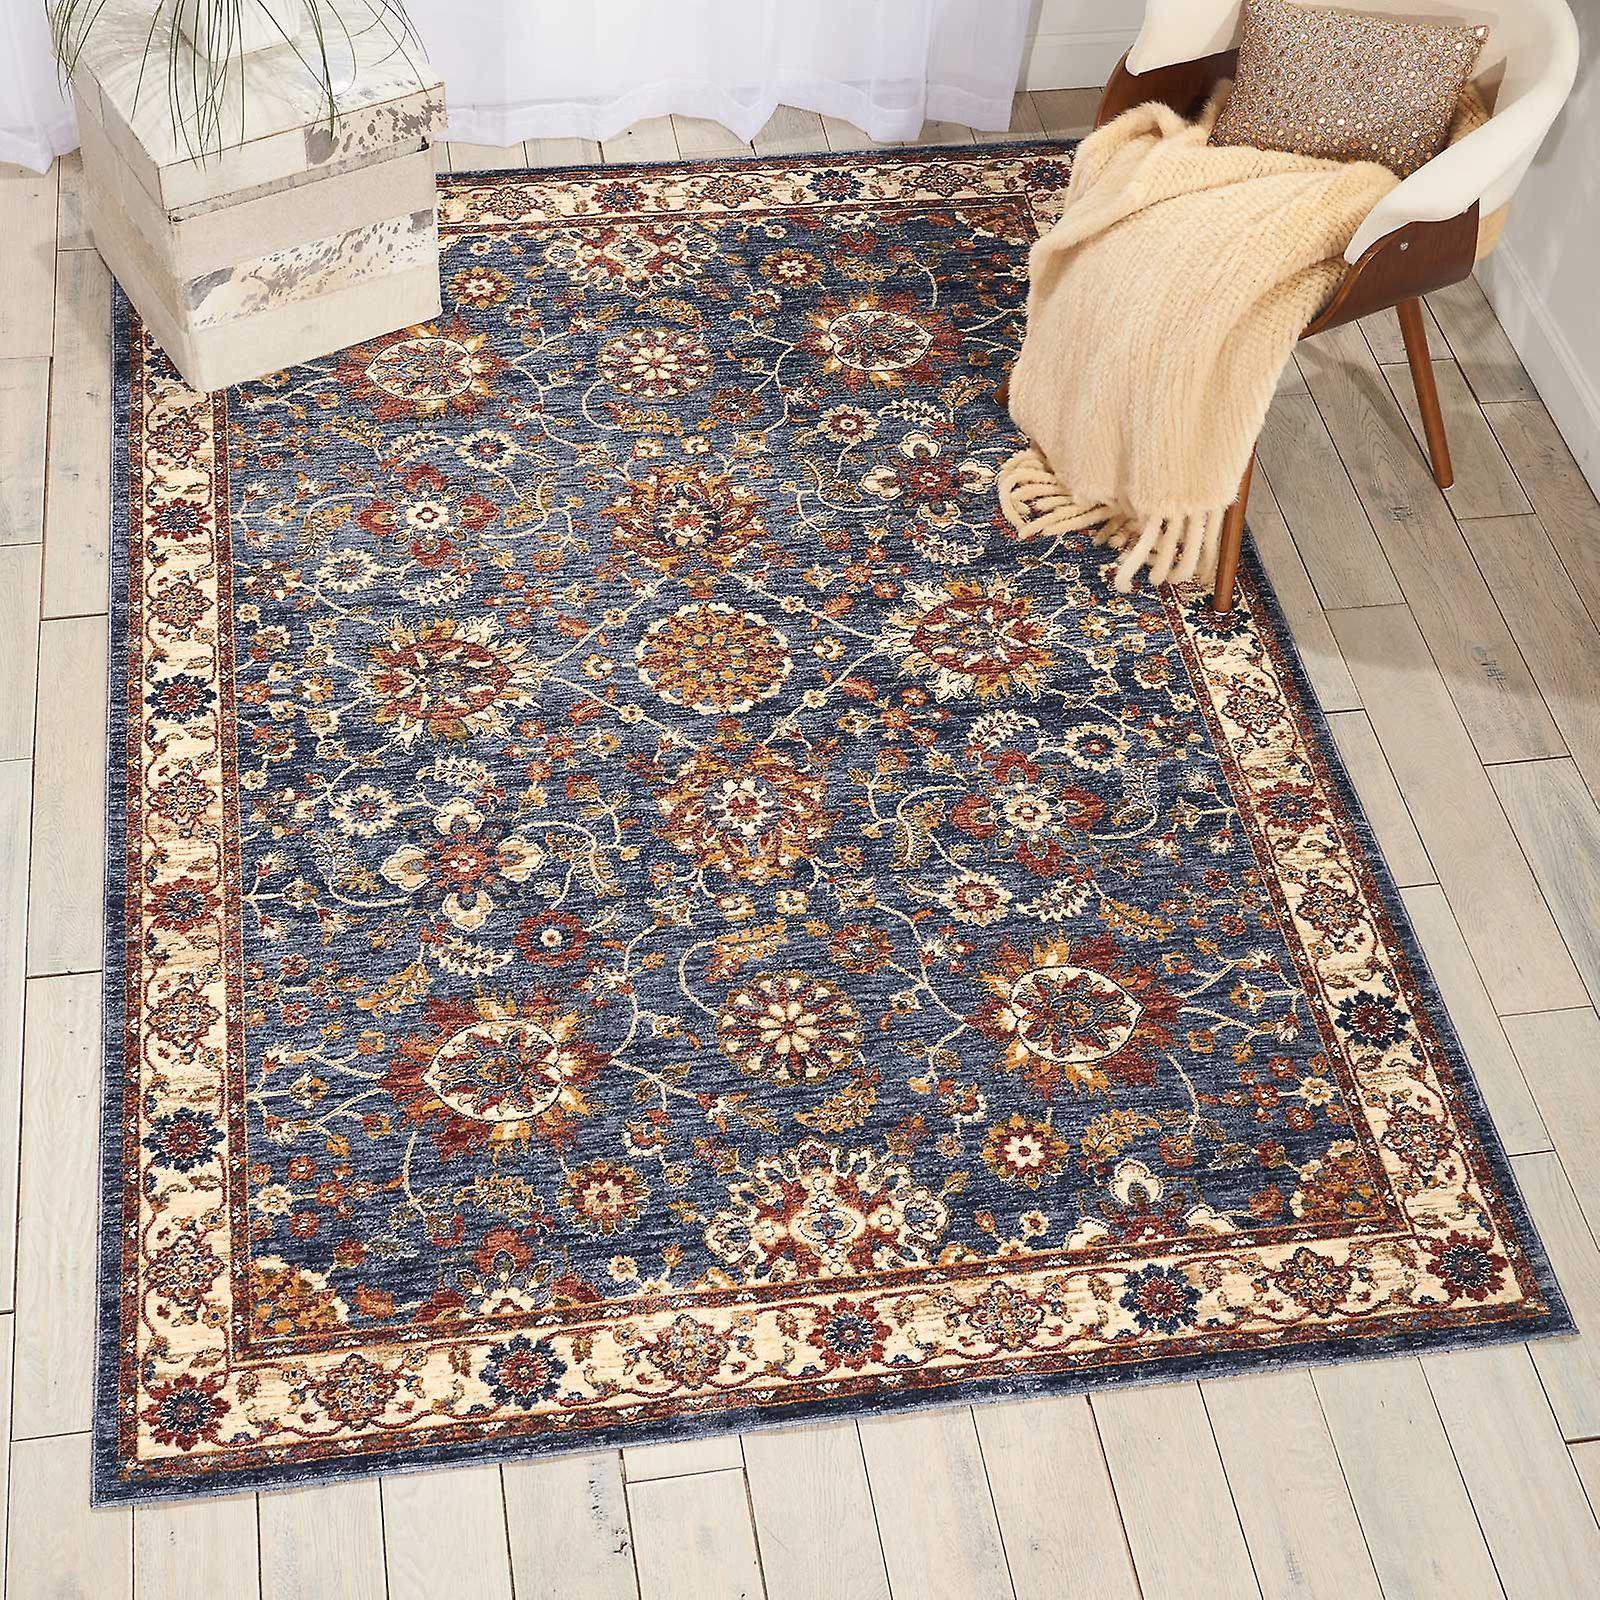 Lagos Rugs By Nourison Lag04 In bleu